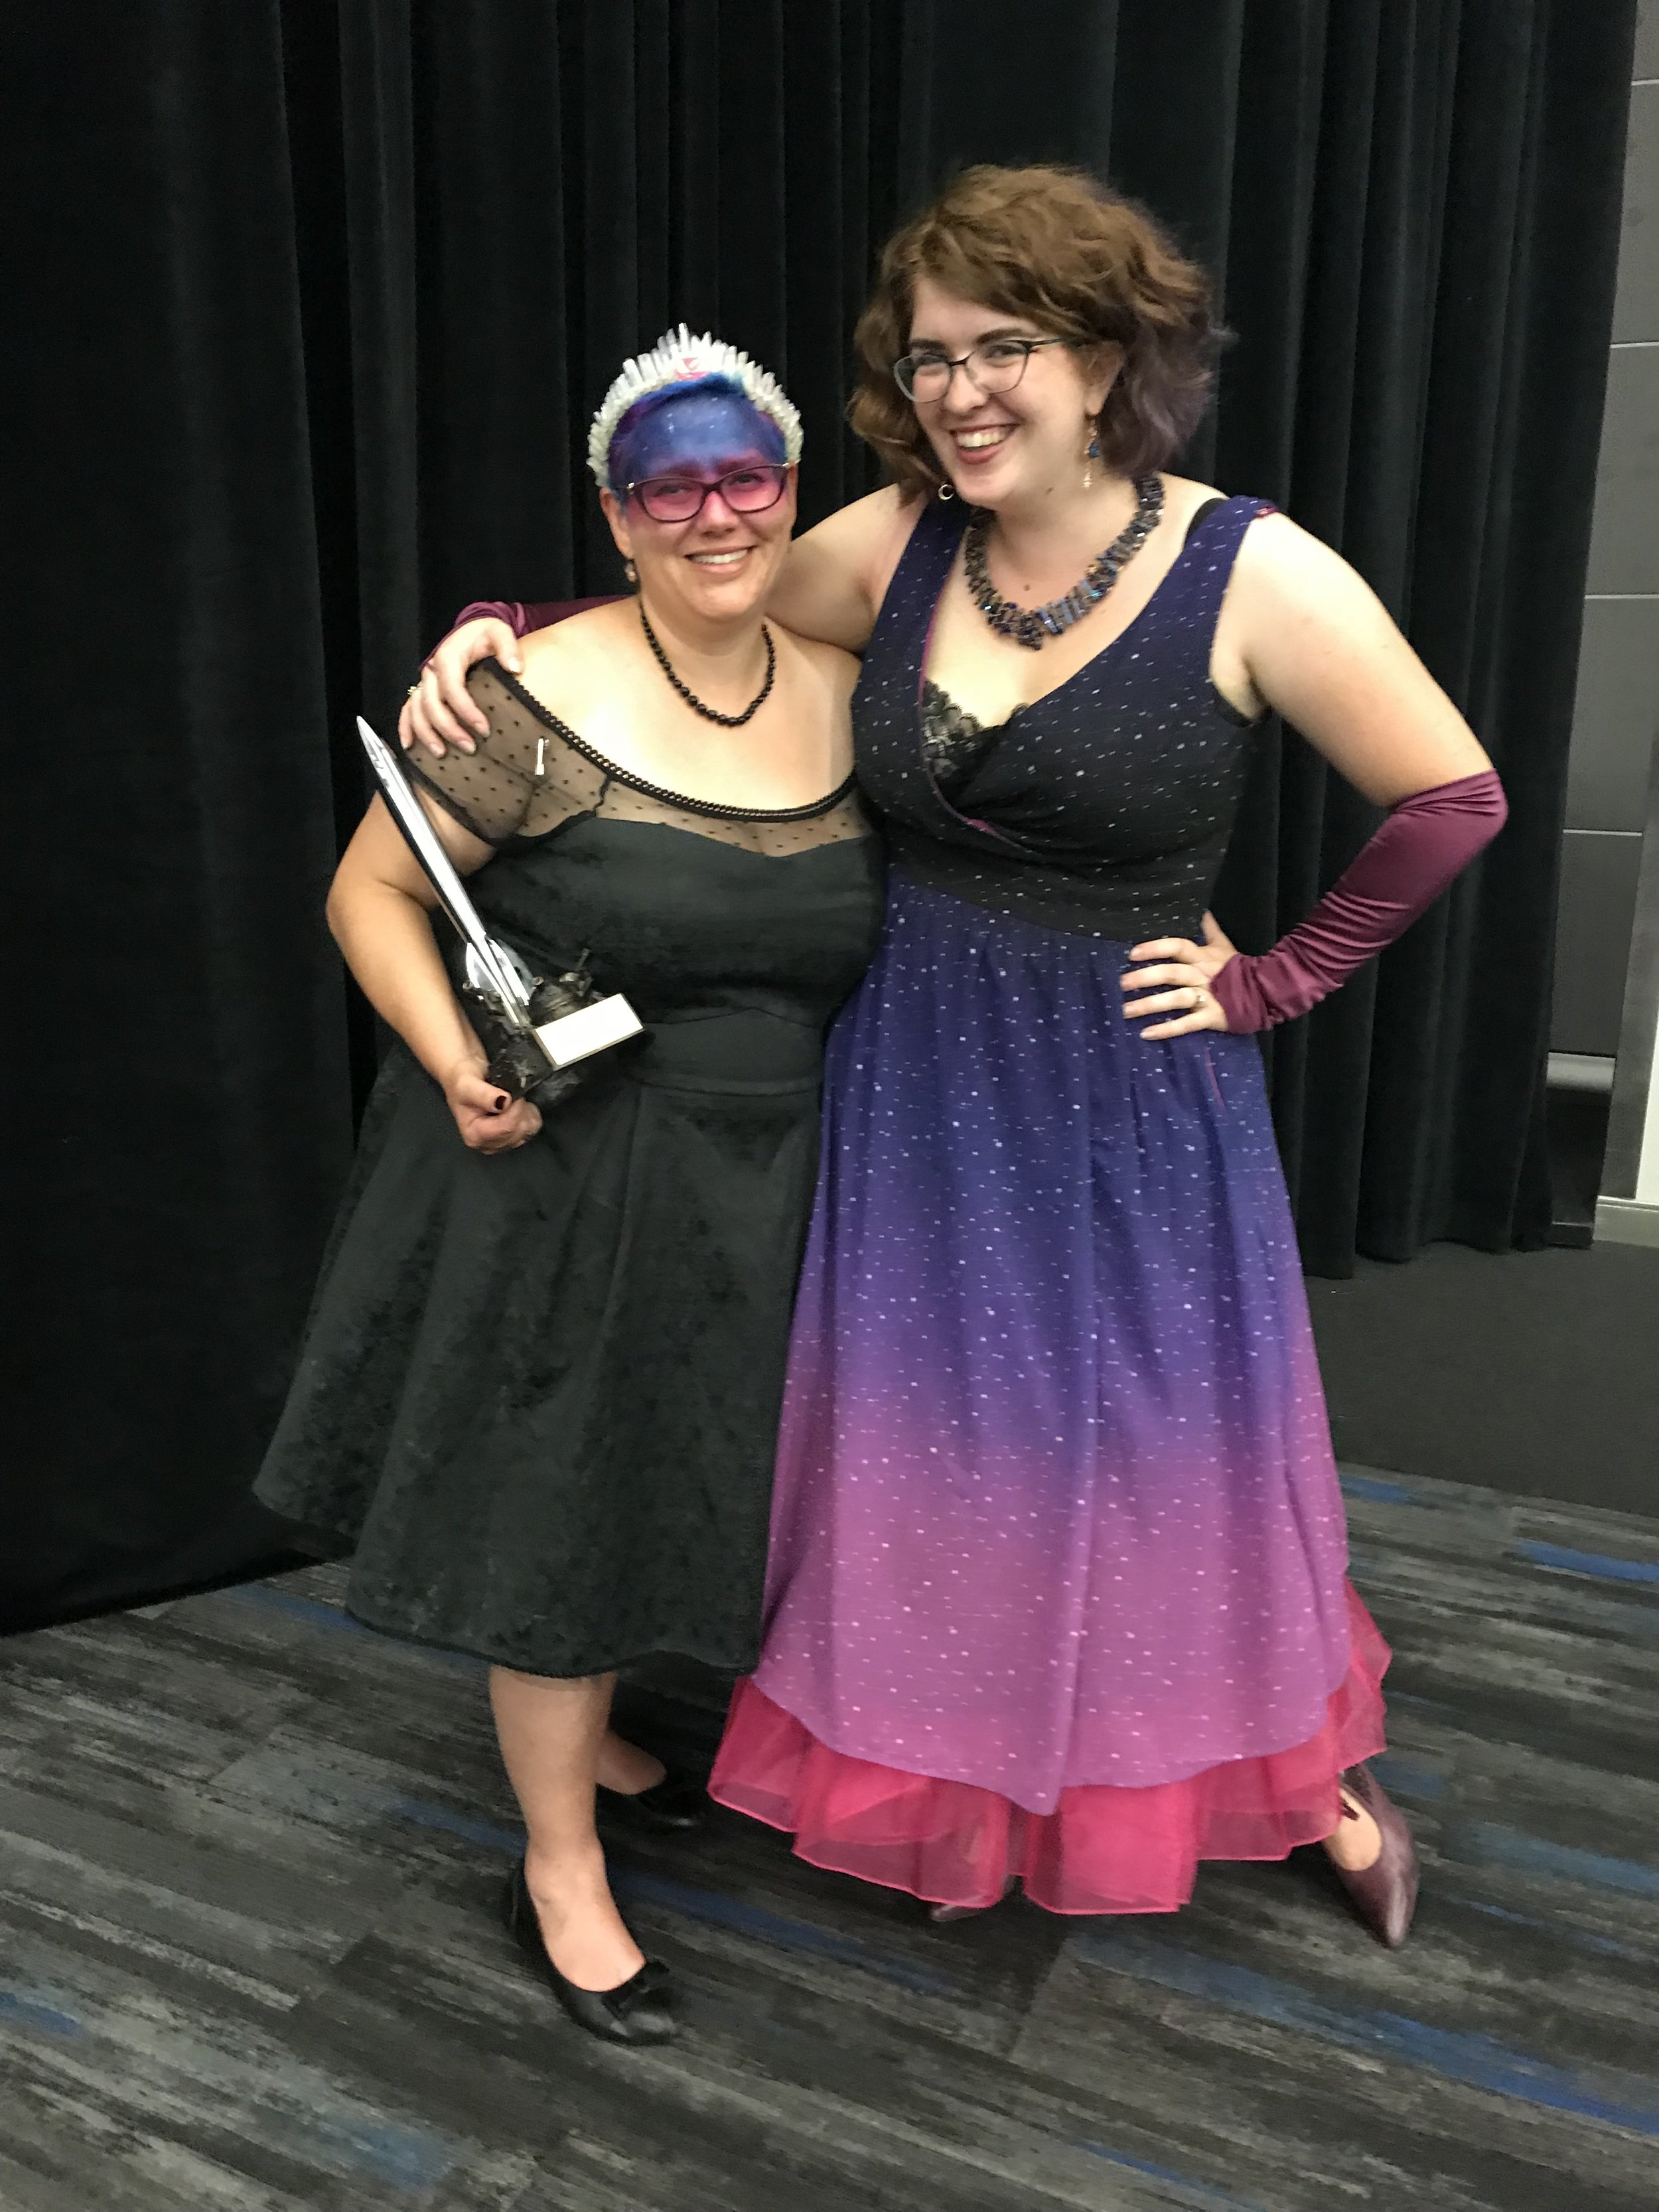 Julia Rios and Alyshondra Meacham after the Hugo Awards at Worldcon 76 (Photo by Anonymous on Julia's phone)